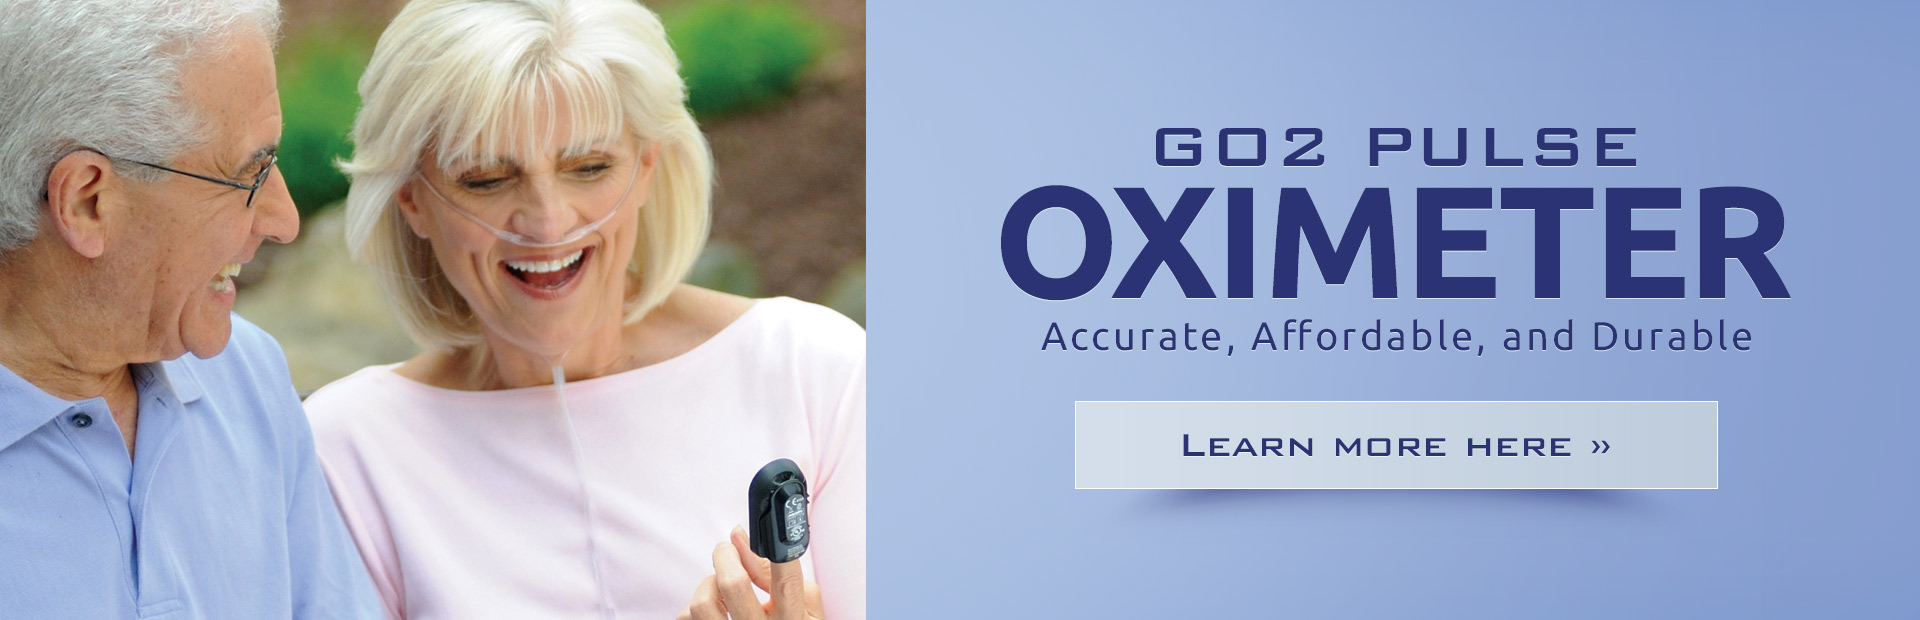 GO2 Pulse Oximeter: Click here to learn more.